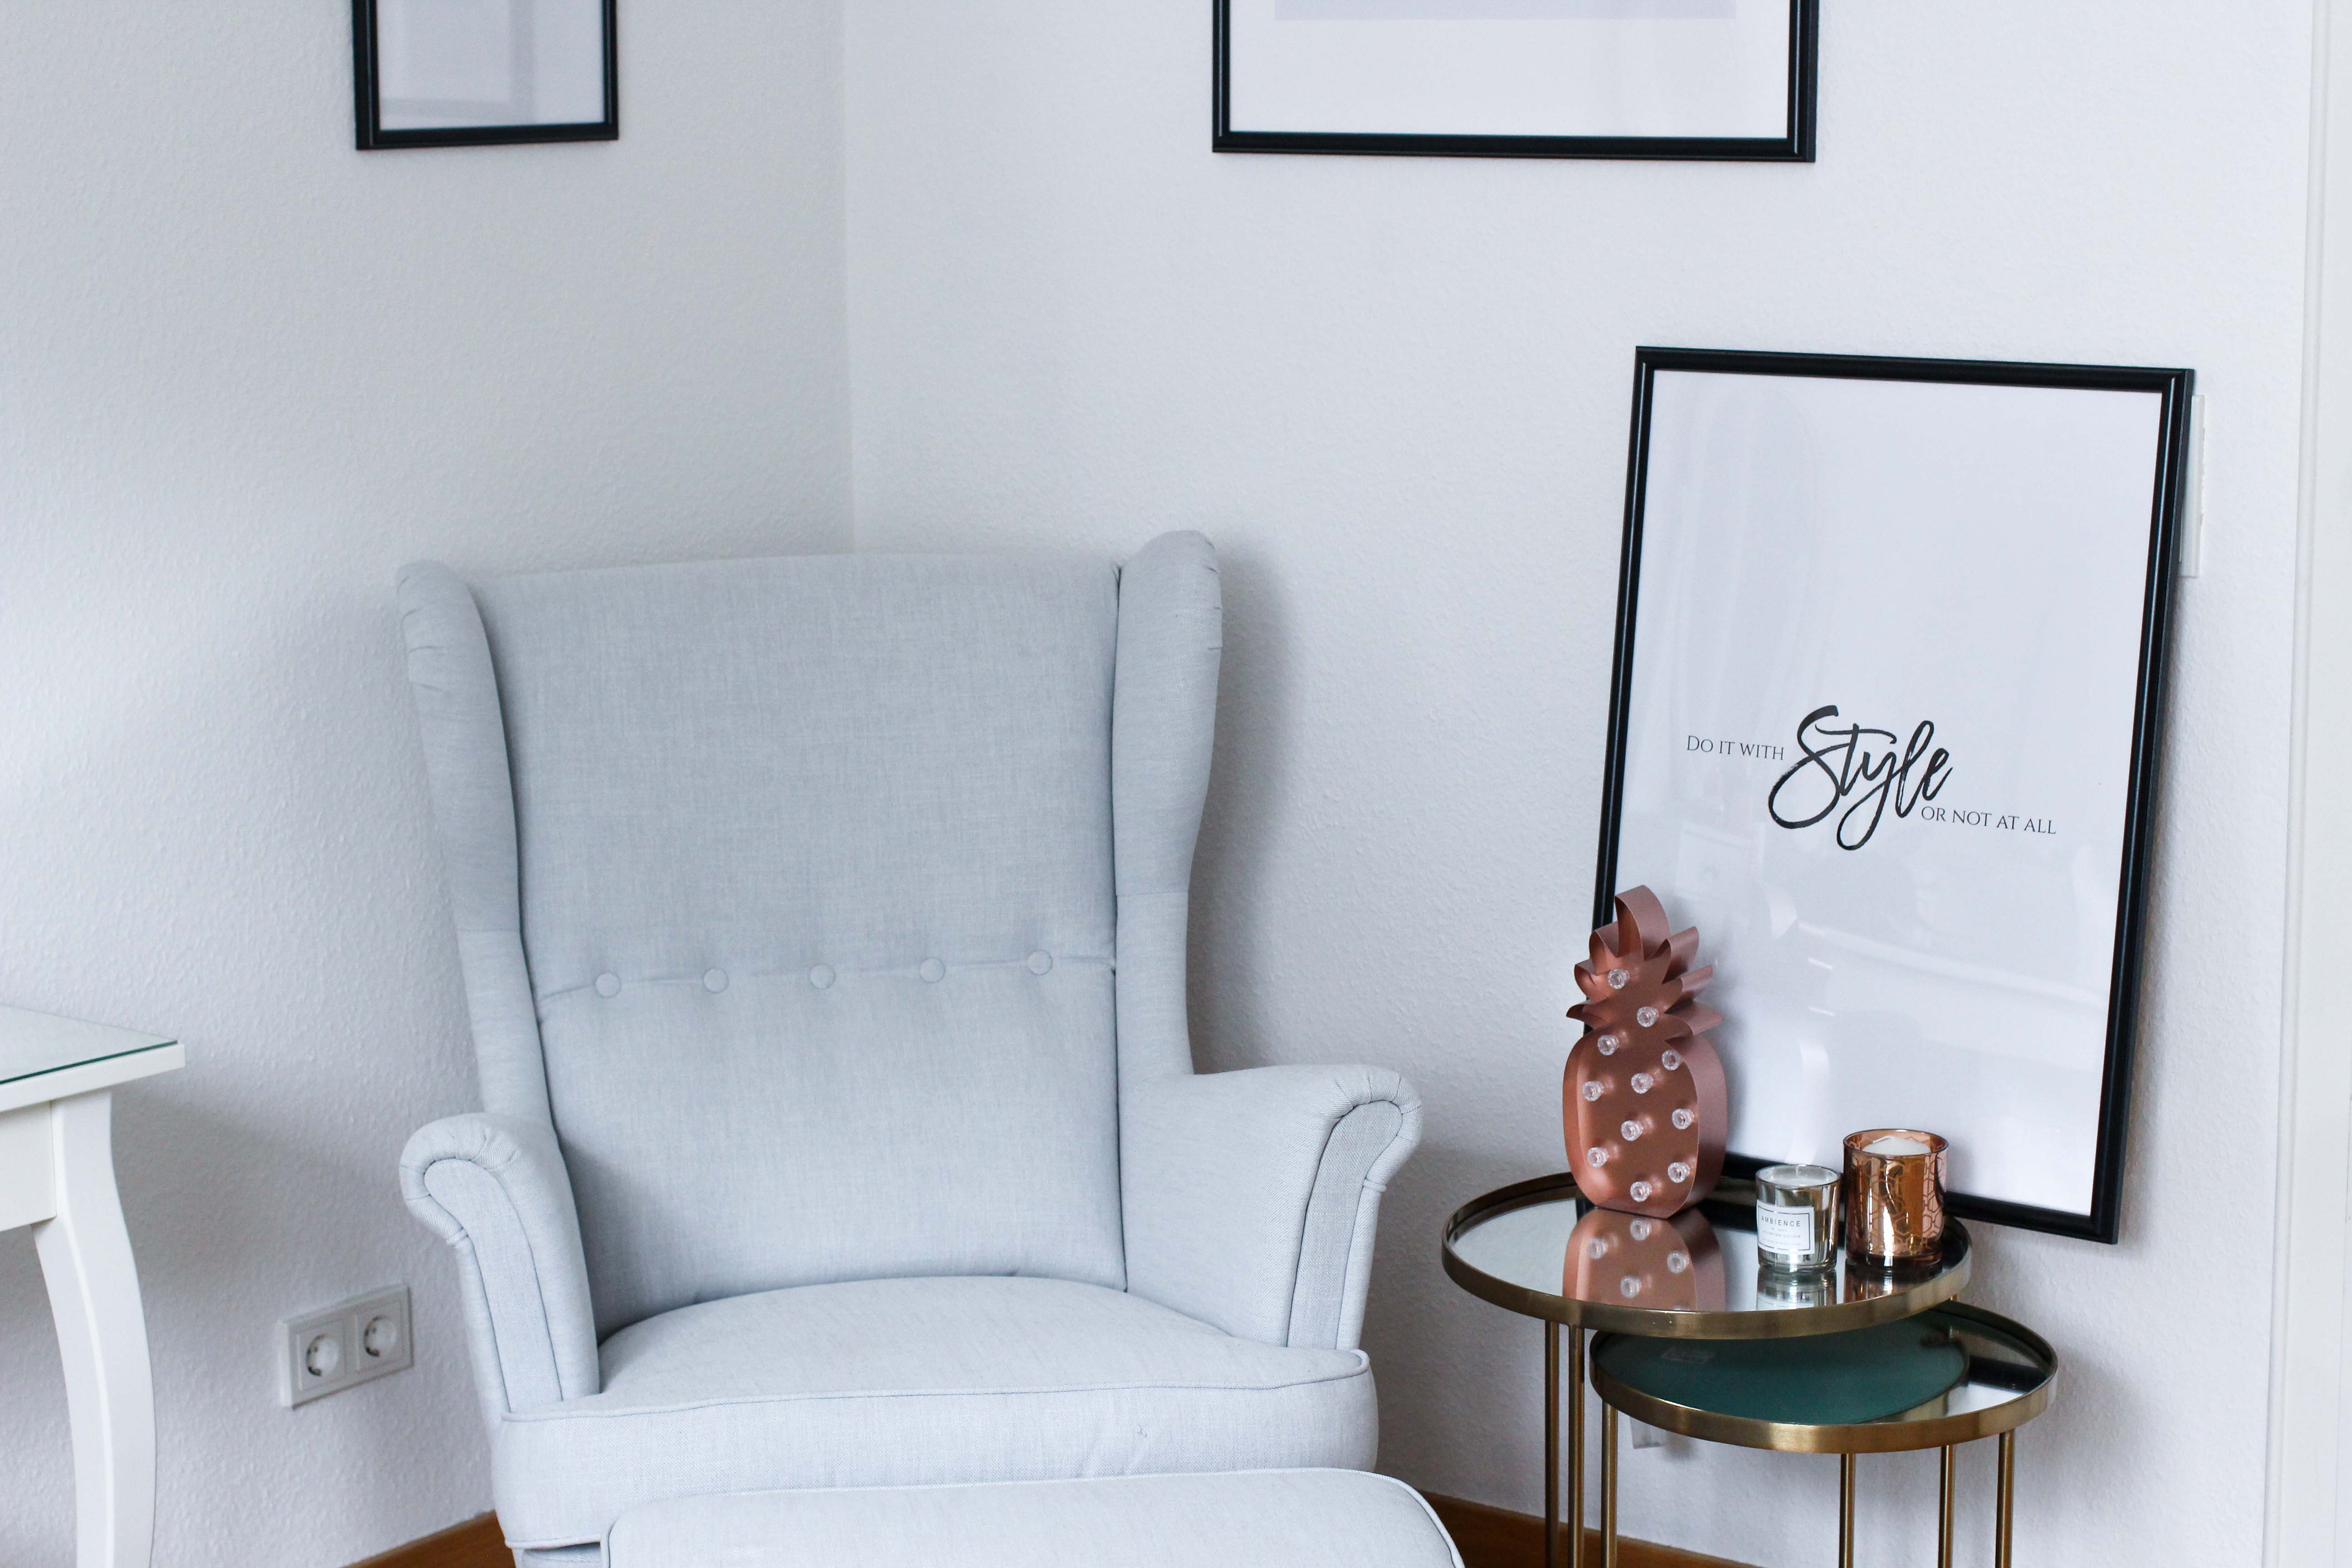 Interior Tipp Wohnung Poster Do it with Style or not at all Ankleidezimmer Blogger Ikea Sessel Posterlounge